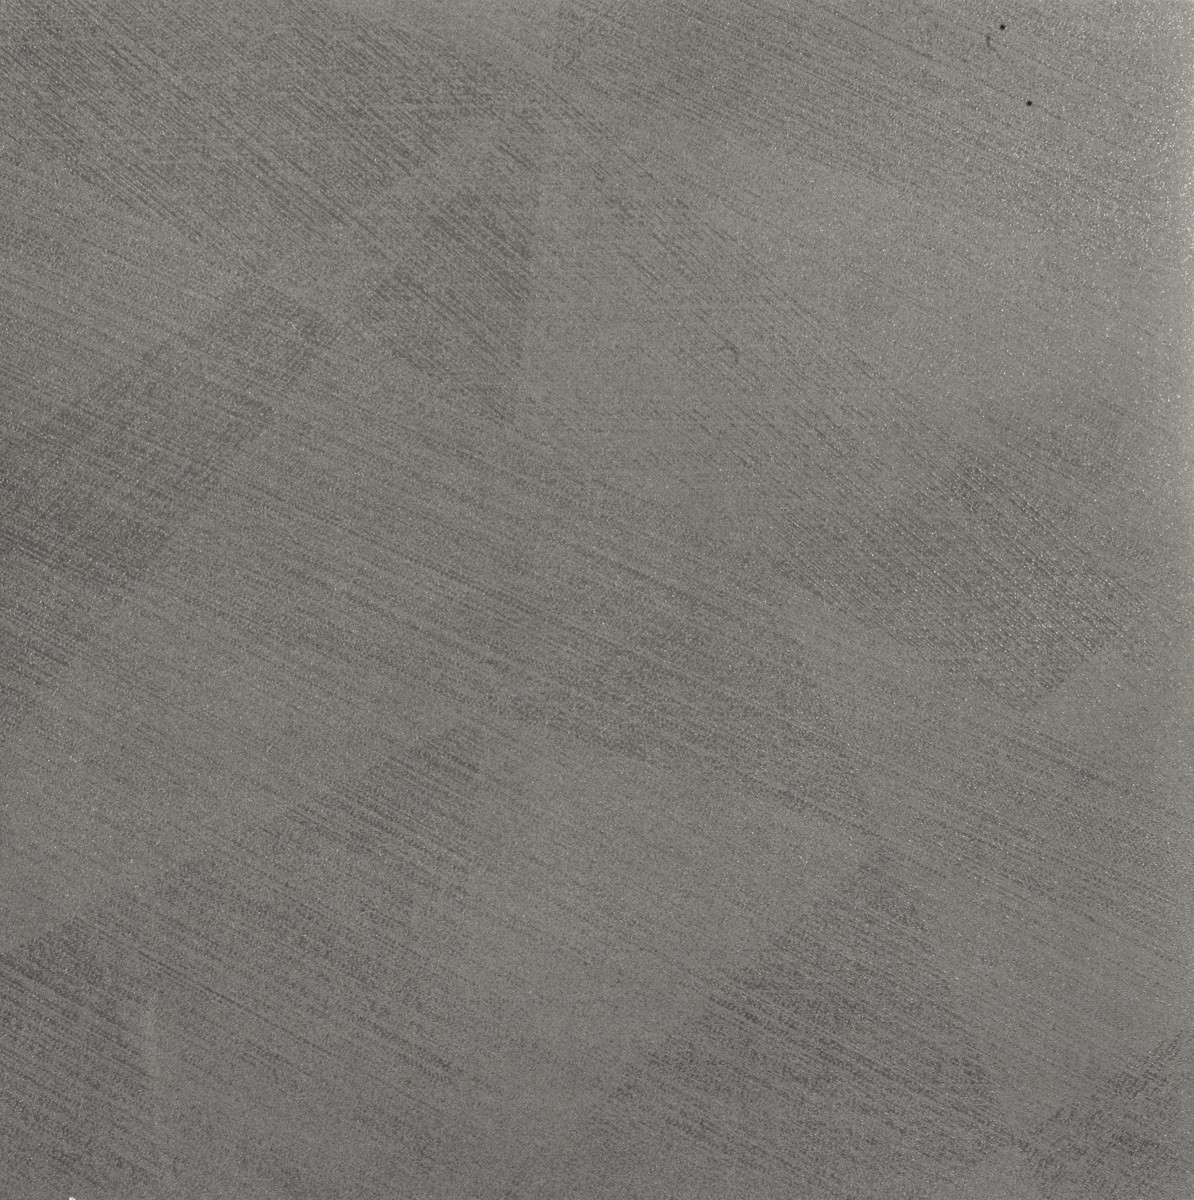 Materia Grey Semi-Polished 800 x 800mm